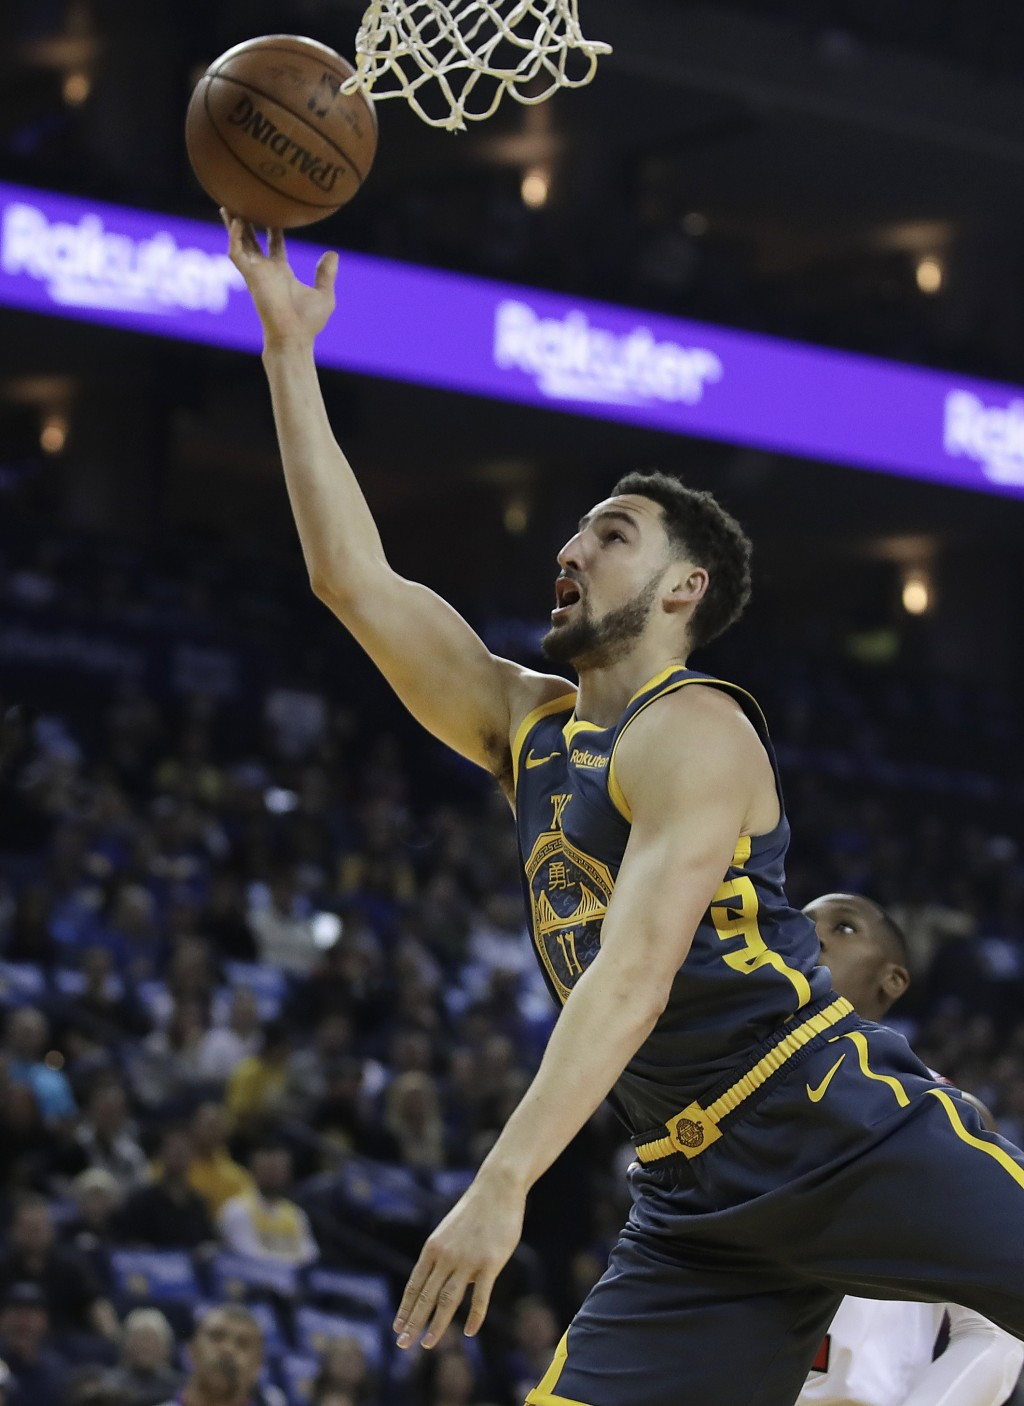 Golden State Warriors' Klay Thompson lays up a shot against the Chicago Bulls during the first half of an NBA basketball game Friday, Jan. 11, 2019, i